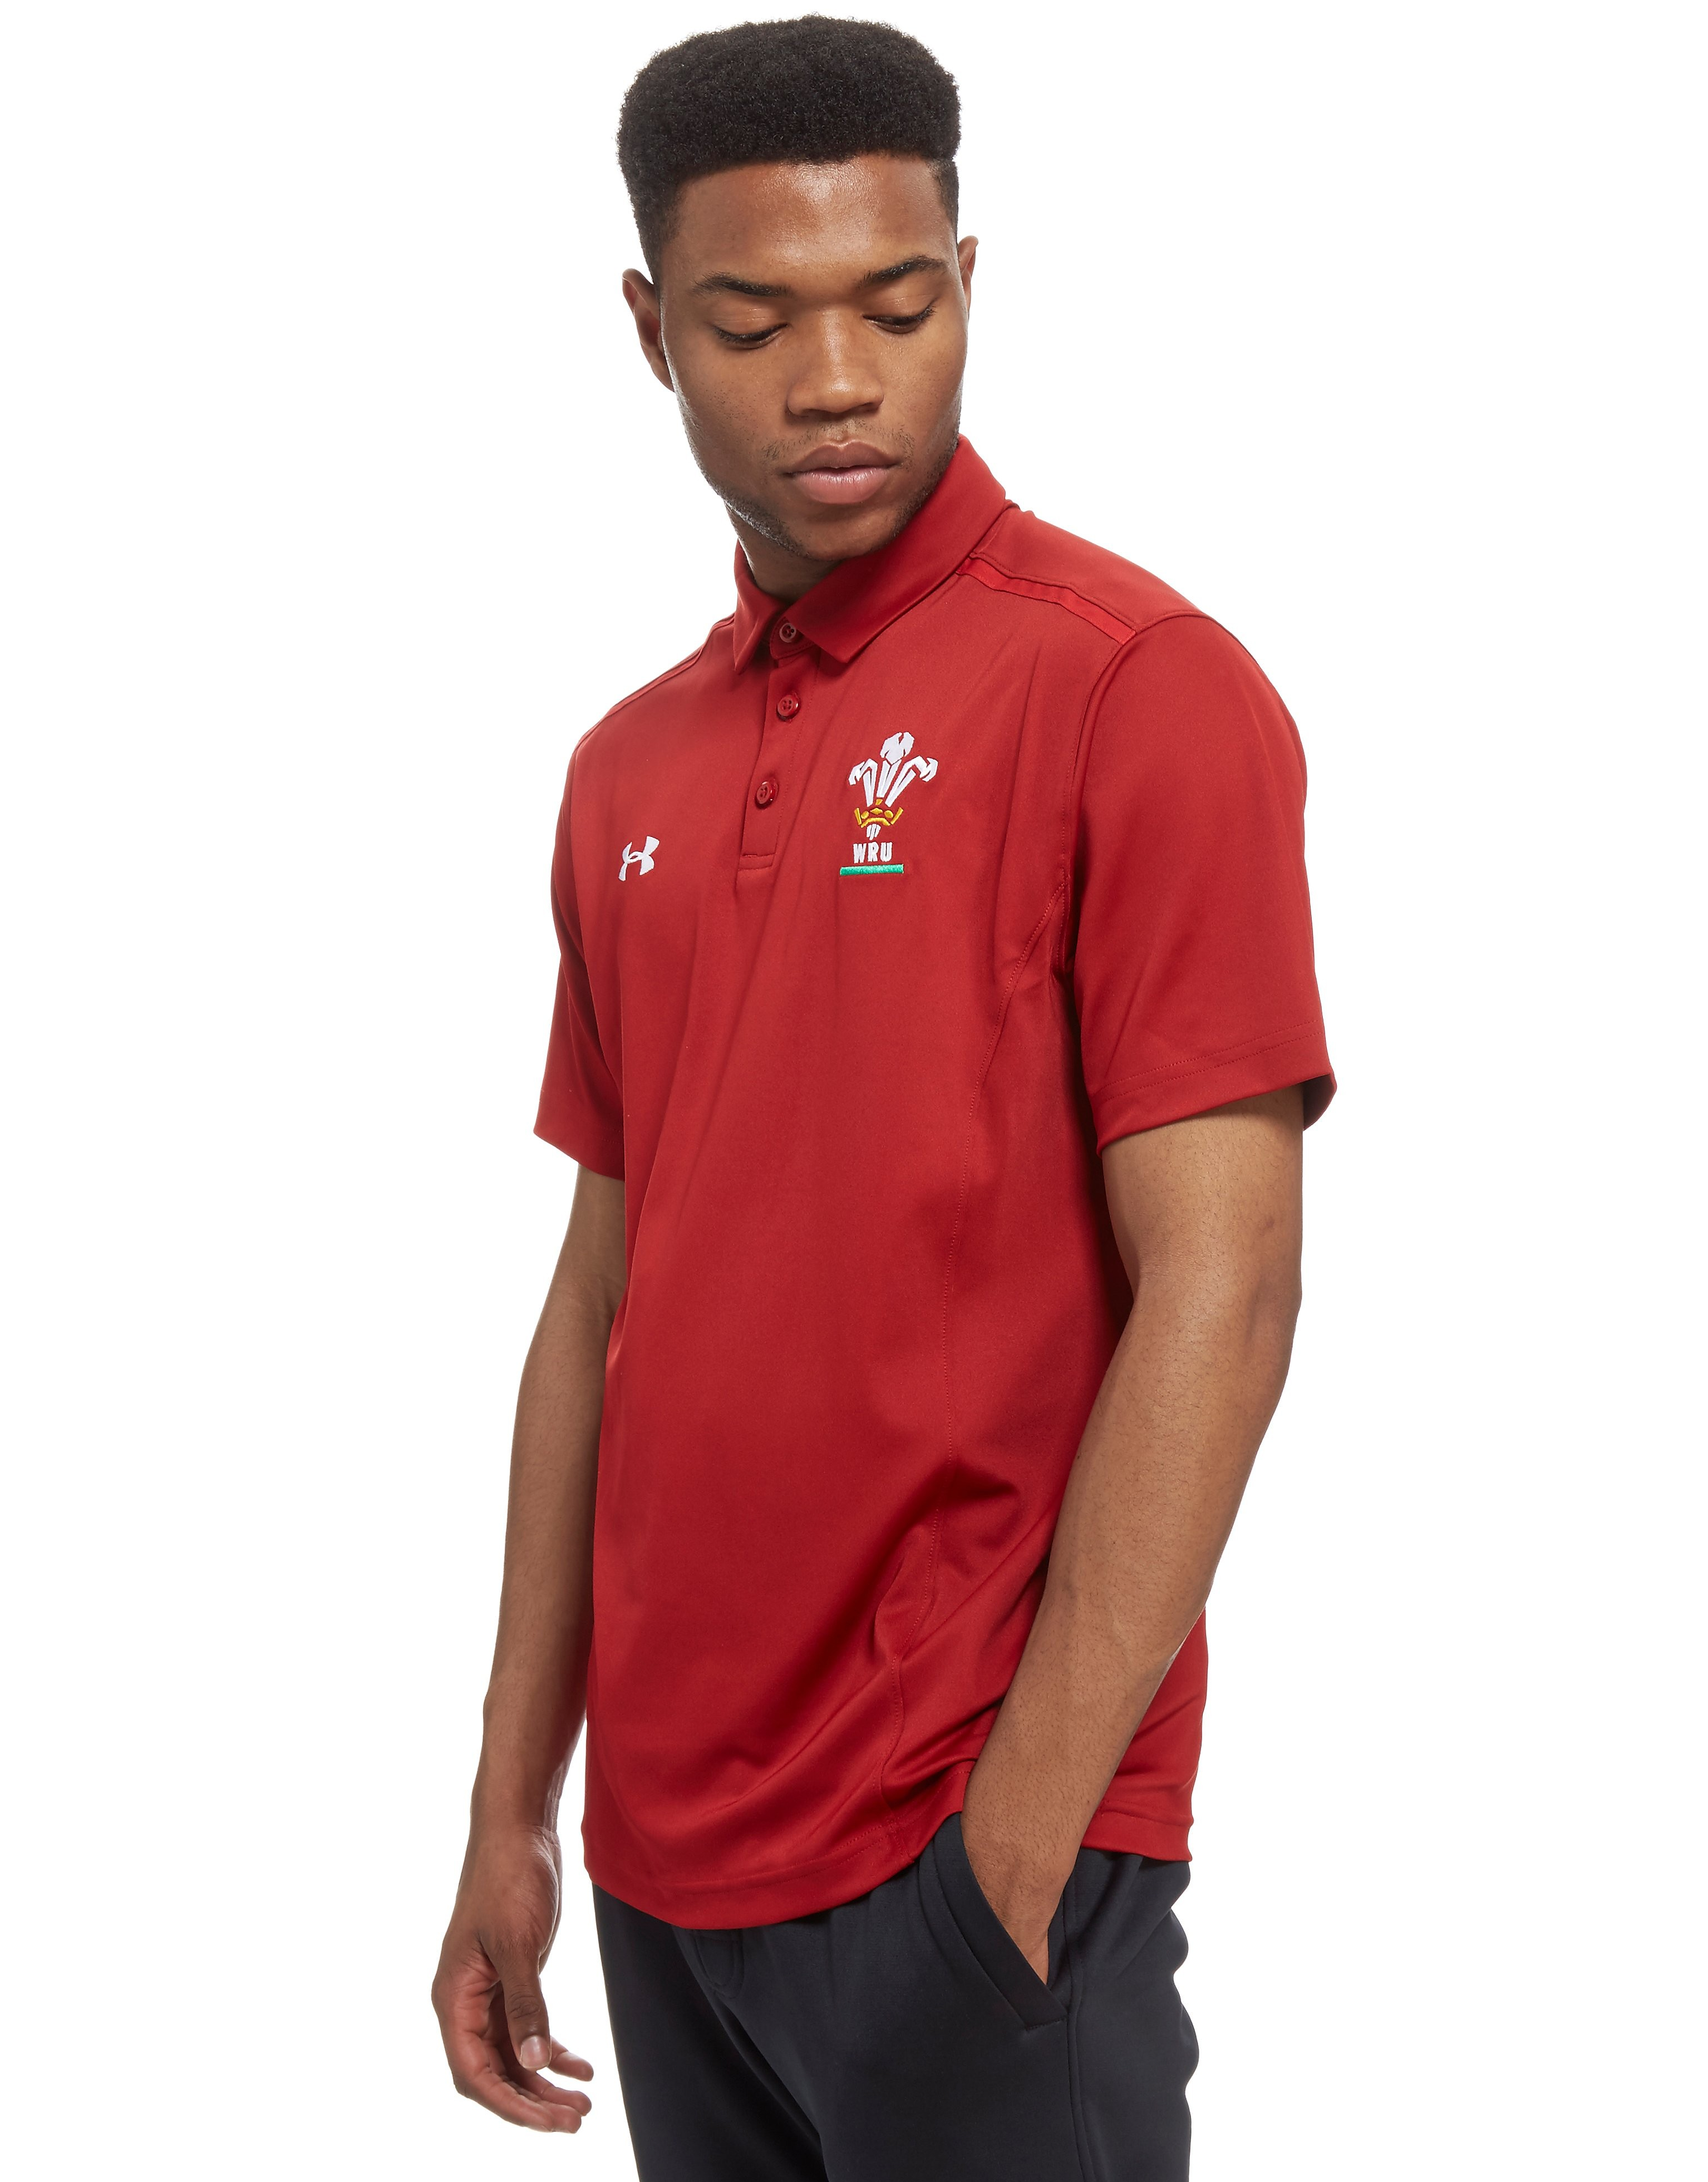 Under Armour Wales RU Polo Shirt